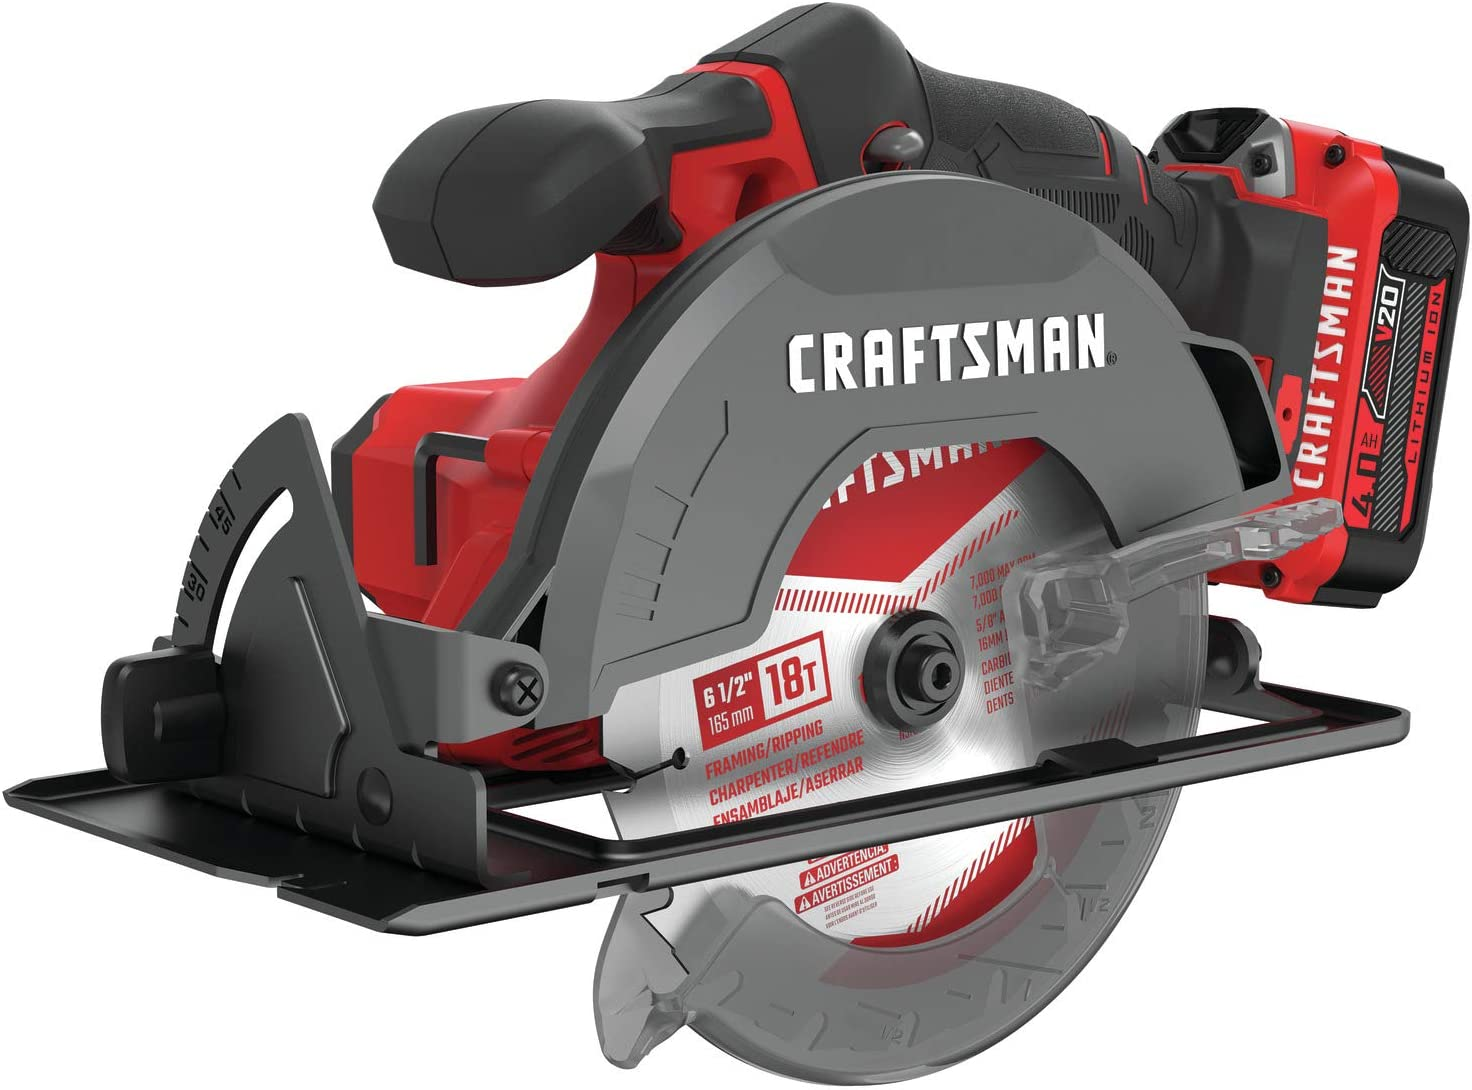 CRAFTSMAN V20 6-1/2-Inch Cordless Circular Saw Kit